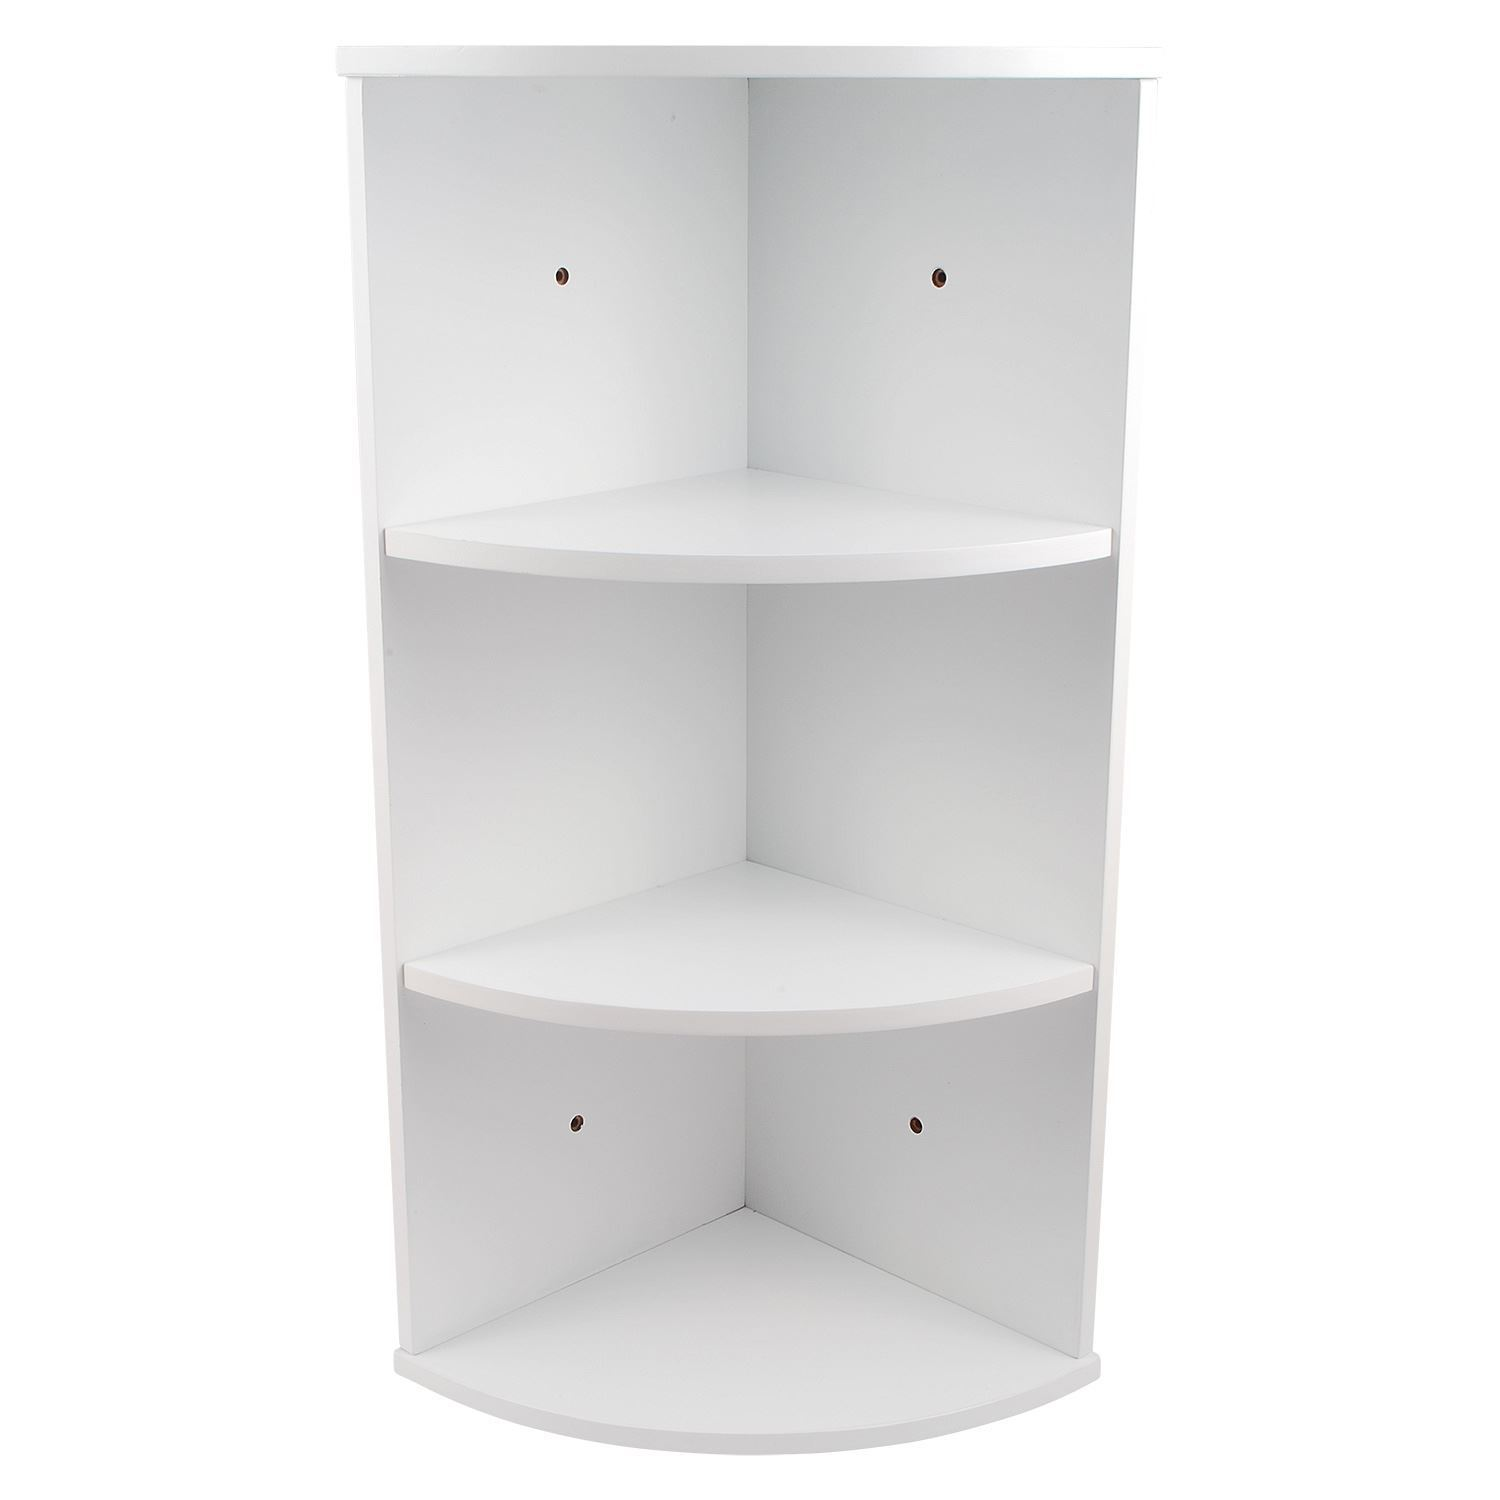 3 Tier White Wooden Corner Wall Mounted Bathroom Storage